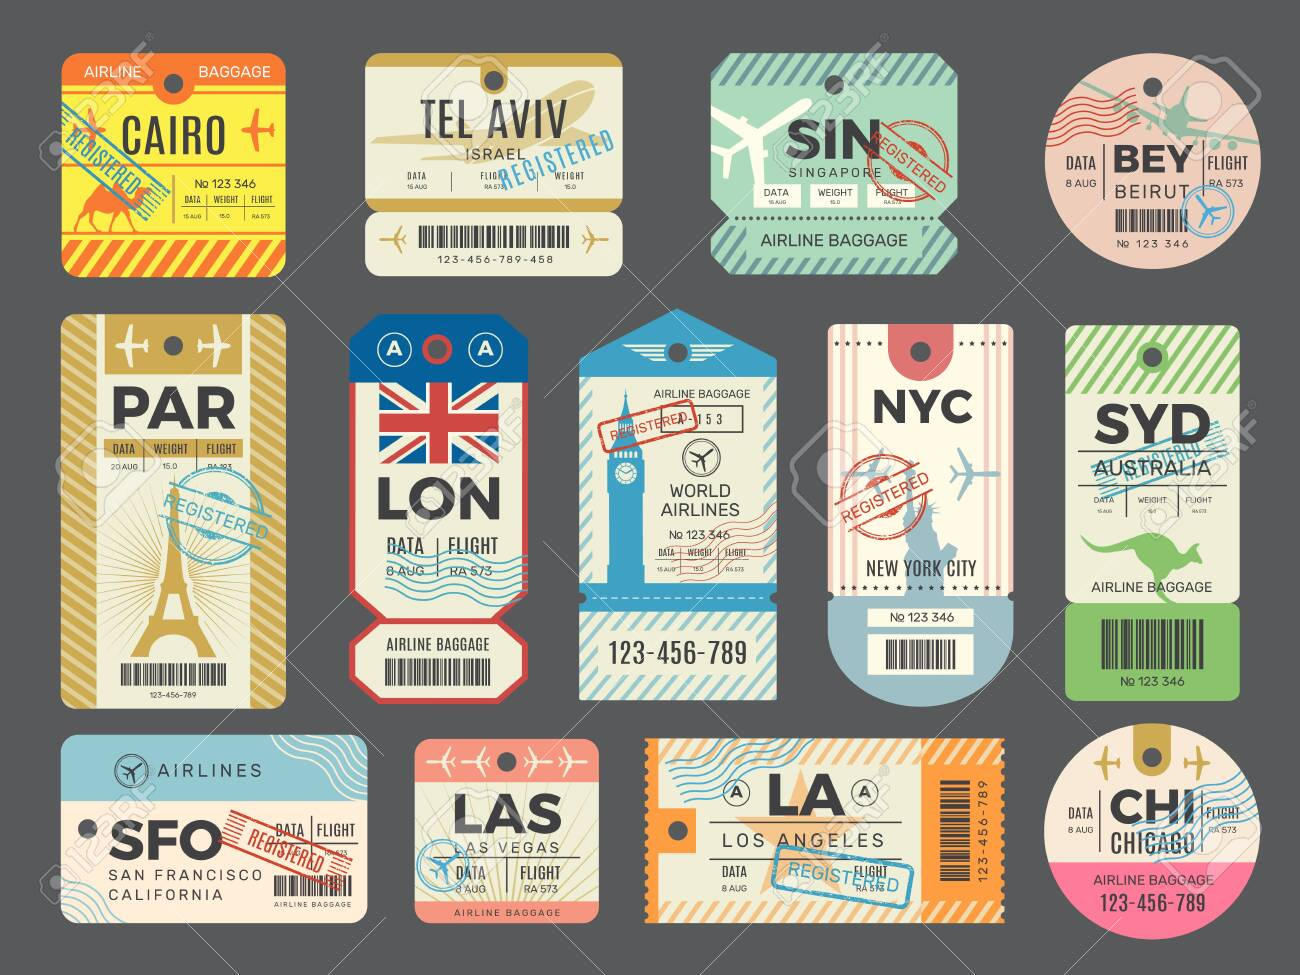 Baggage retro tags. Traveling old tickets flight labels stamps for luggage vector set. Luggage tag ticket, airplane paper baggage card illustration - 144003789